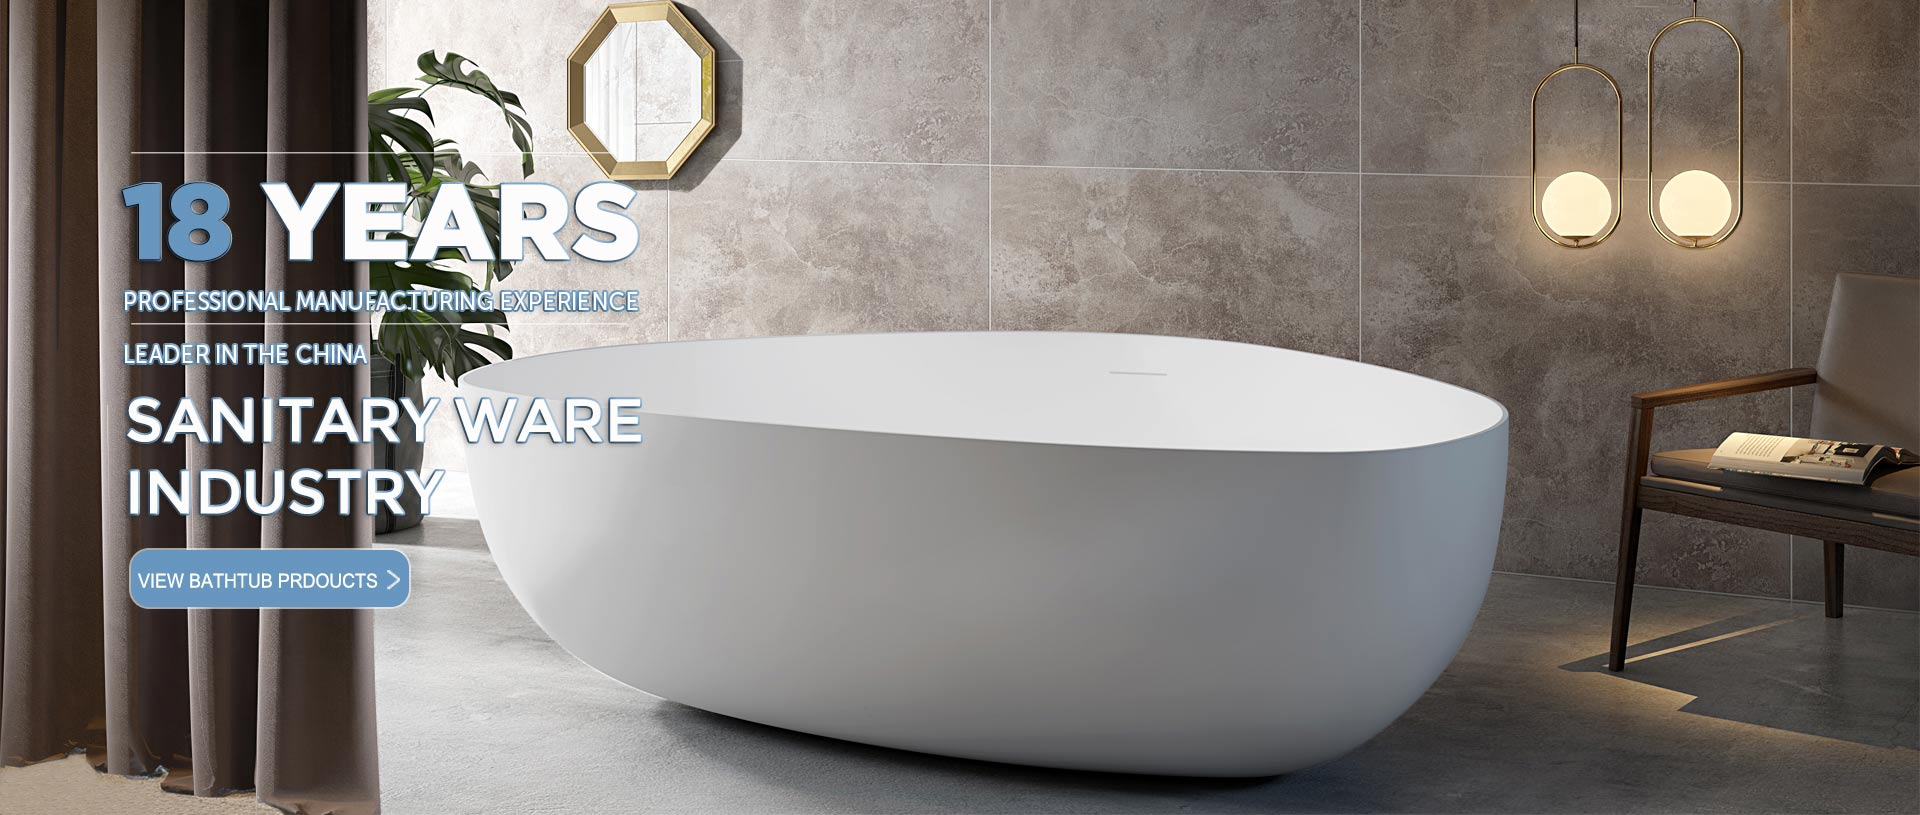 China Bathtub Manufacturer丨T&W Sanitary Ware Co., Ltd Bathtub